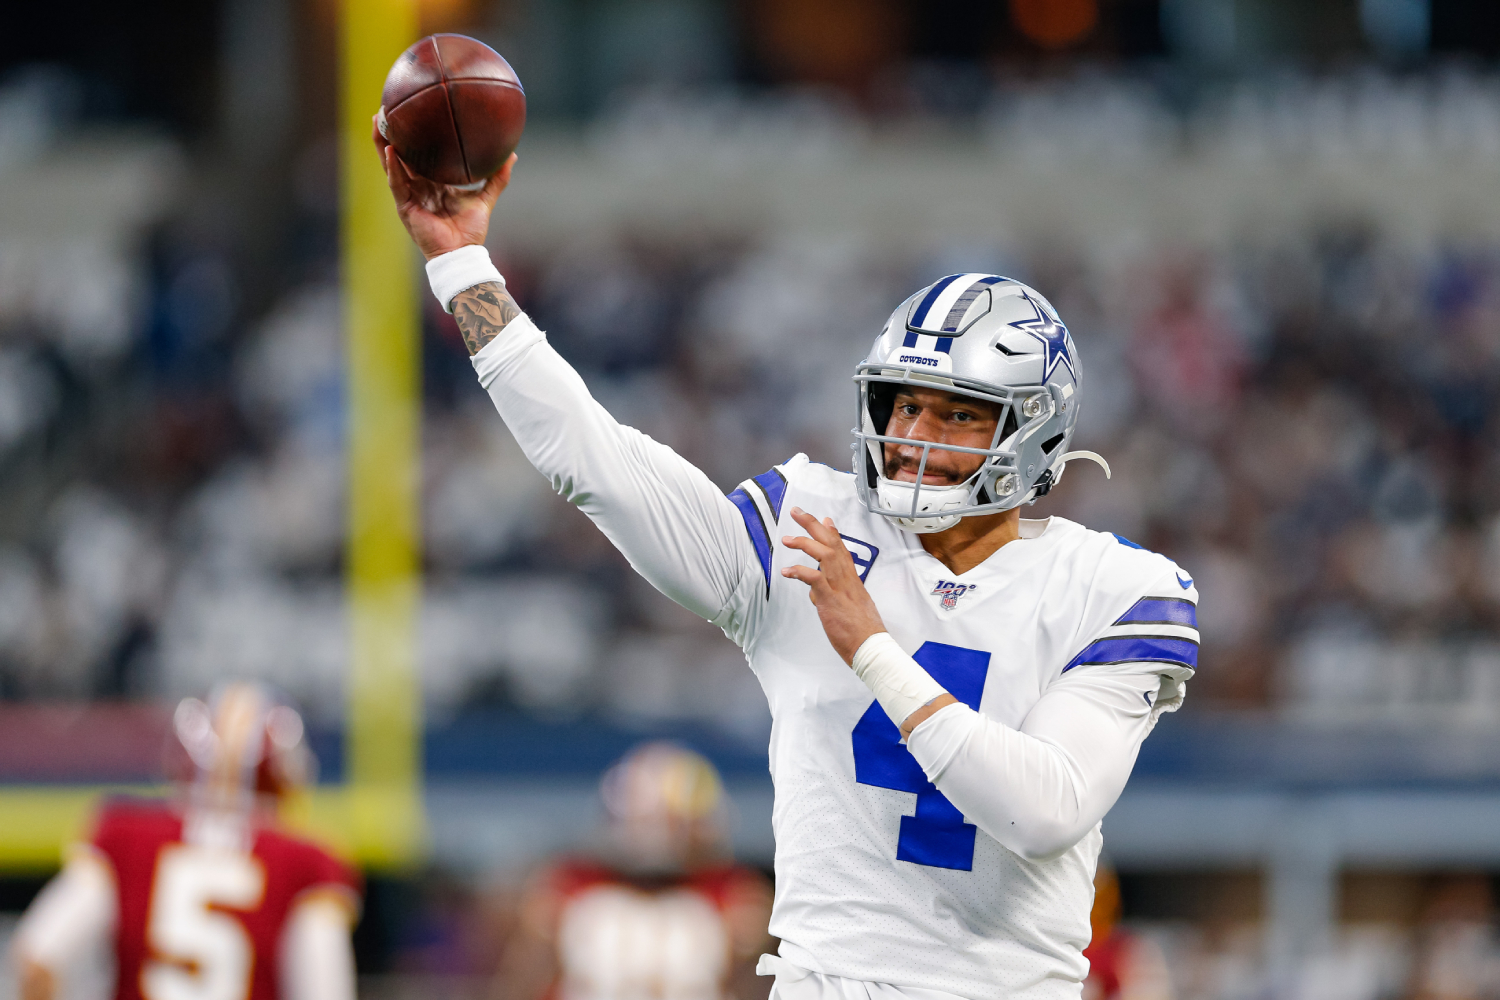 Dak Prescott doesn't have a clear future with the Cowboys. However, Kellen Moore and Dallas just secured a path for his continued success.